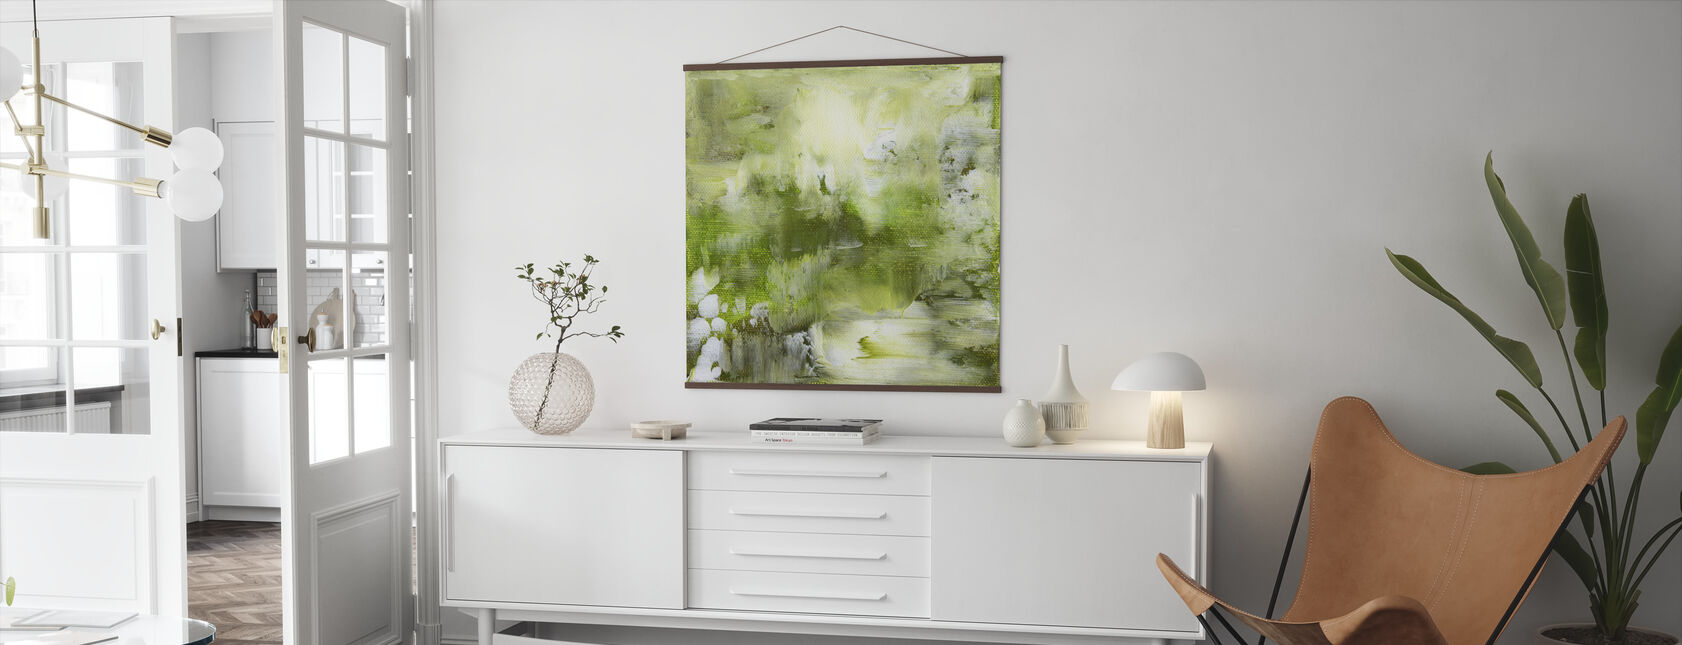 Shades of Green - Poster - Living Room